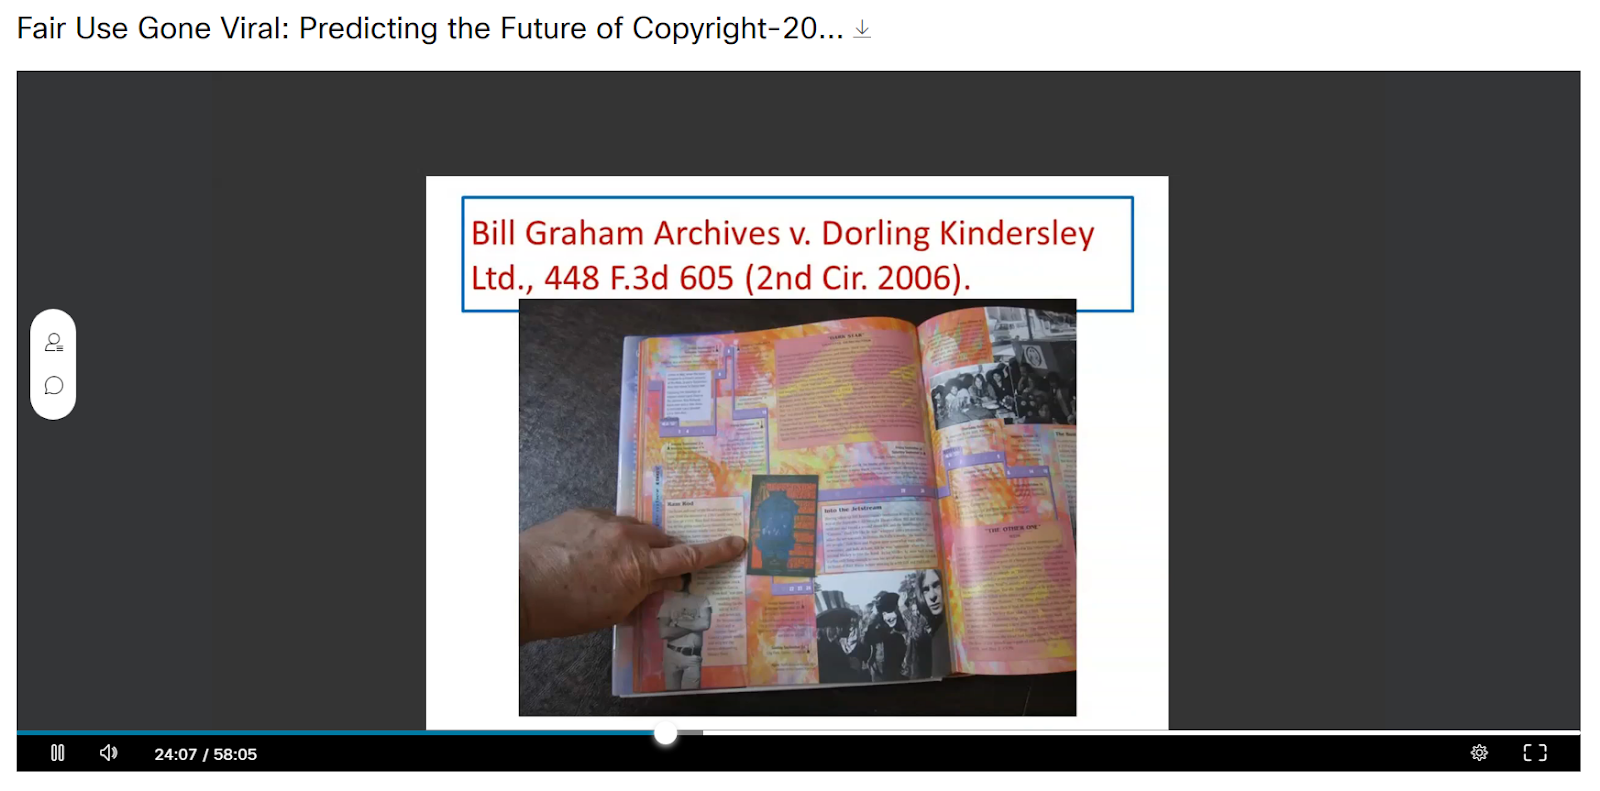 Fair Use Gone Viral: Predicting the Future of Copyright